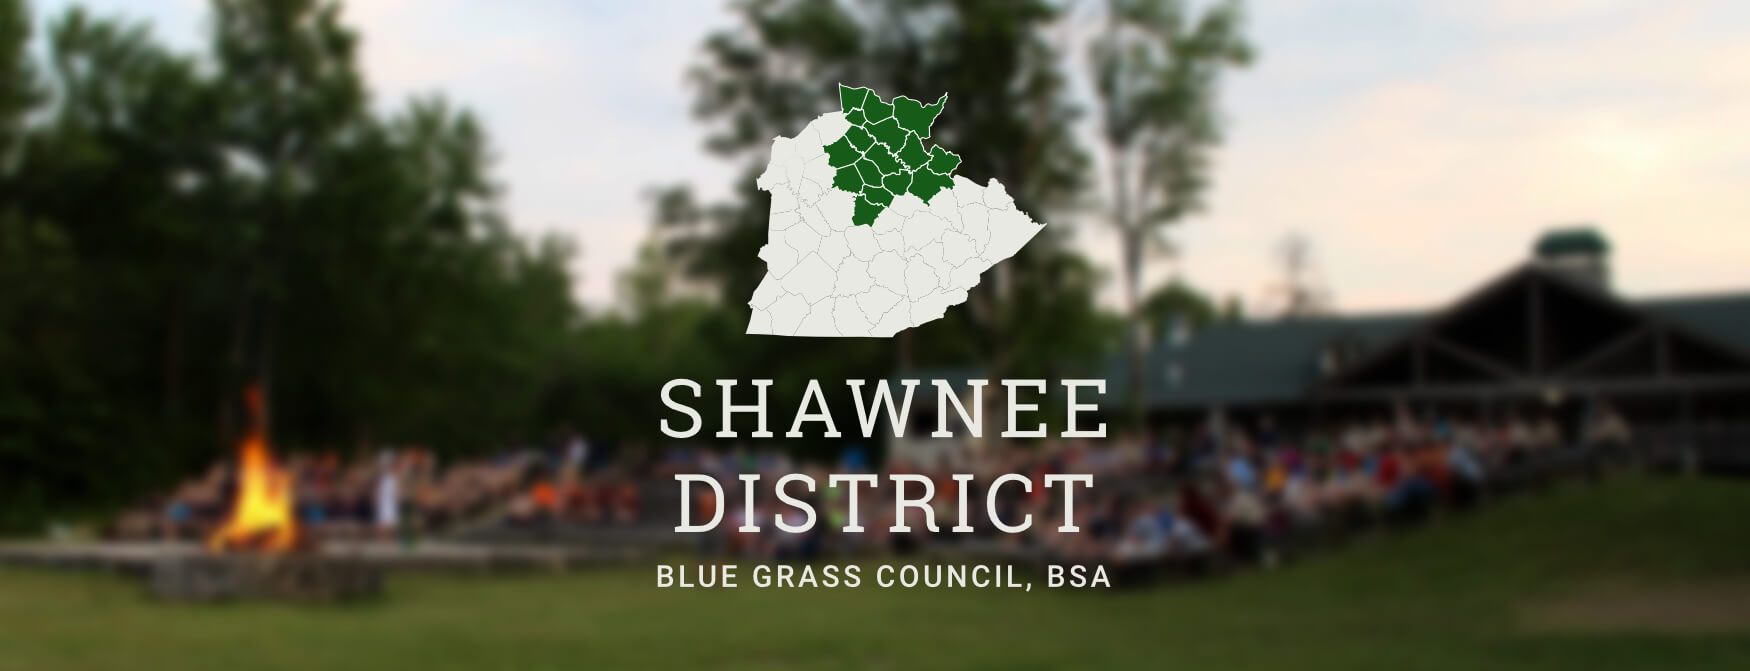 Shawnee District